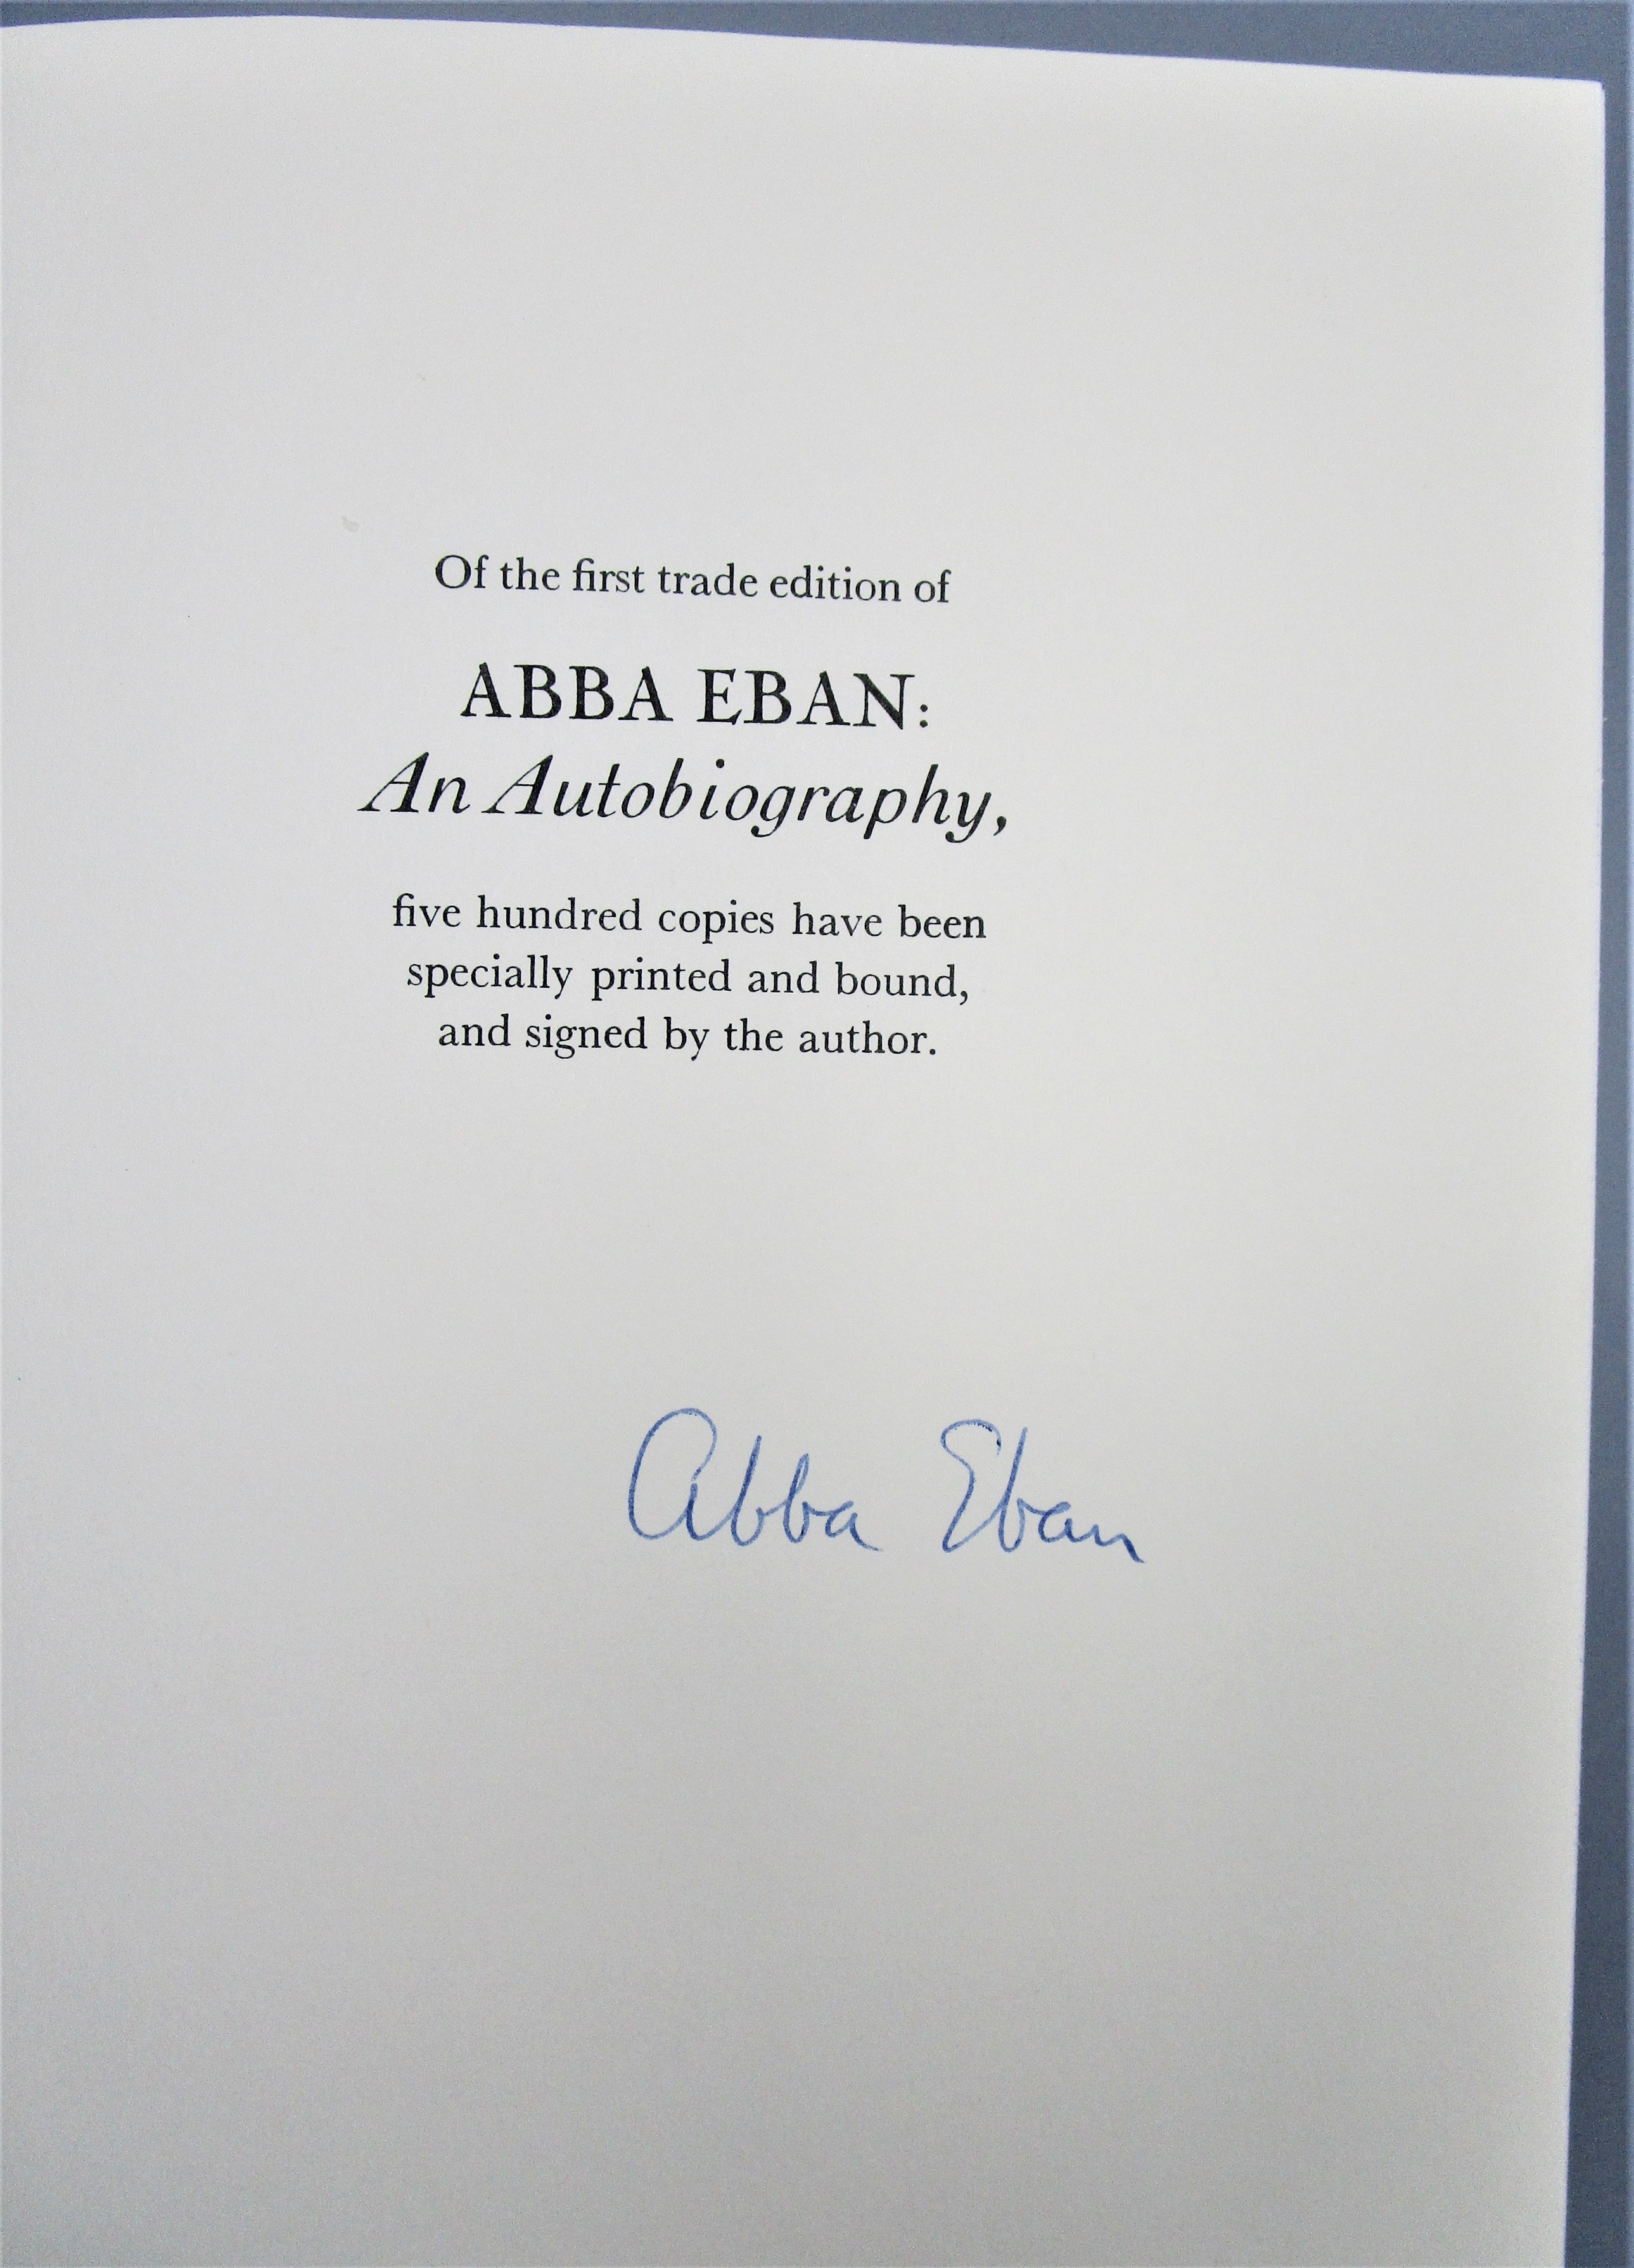 ABBA EBAN: AN AUTOBIOGRAPHY - 1977 [Signed Limited 1st Ed]